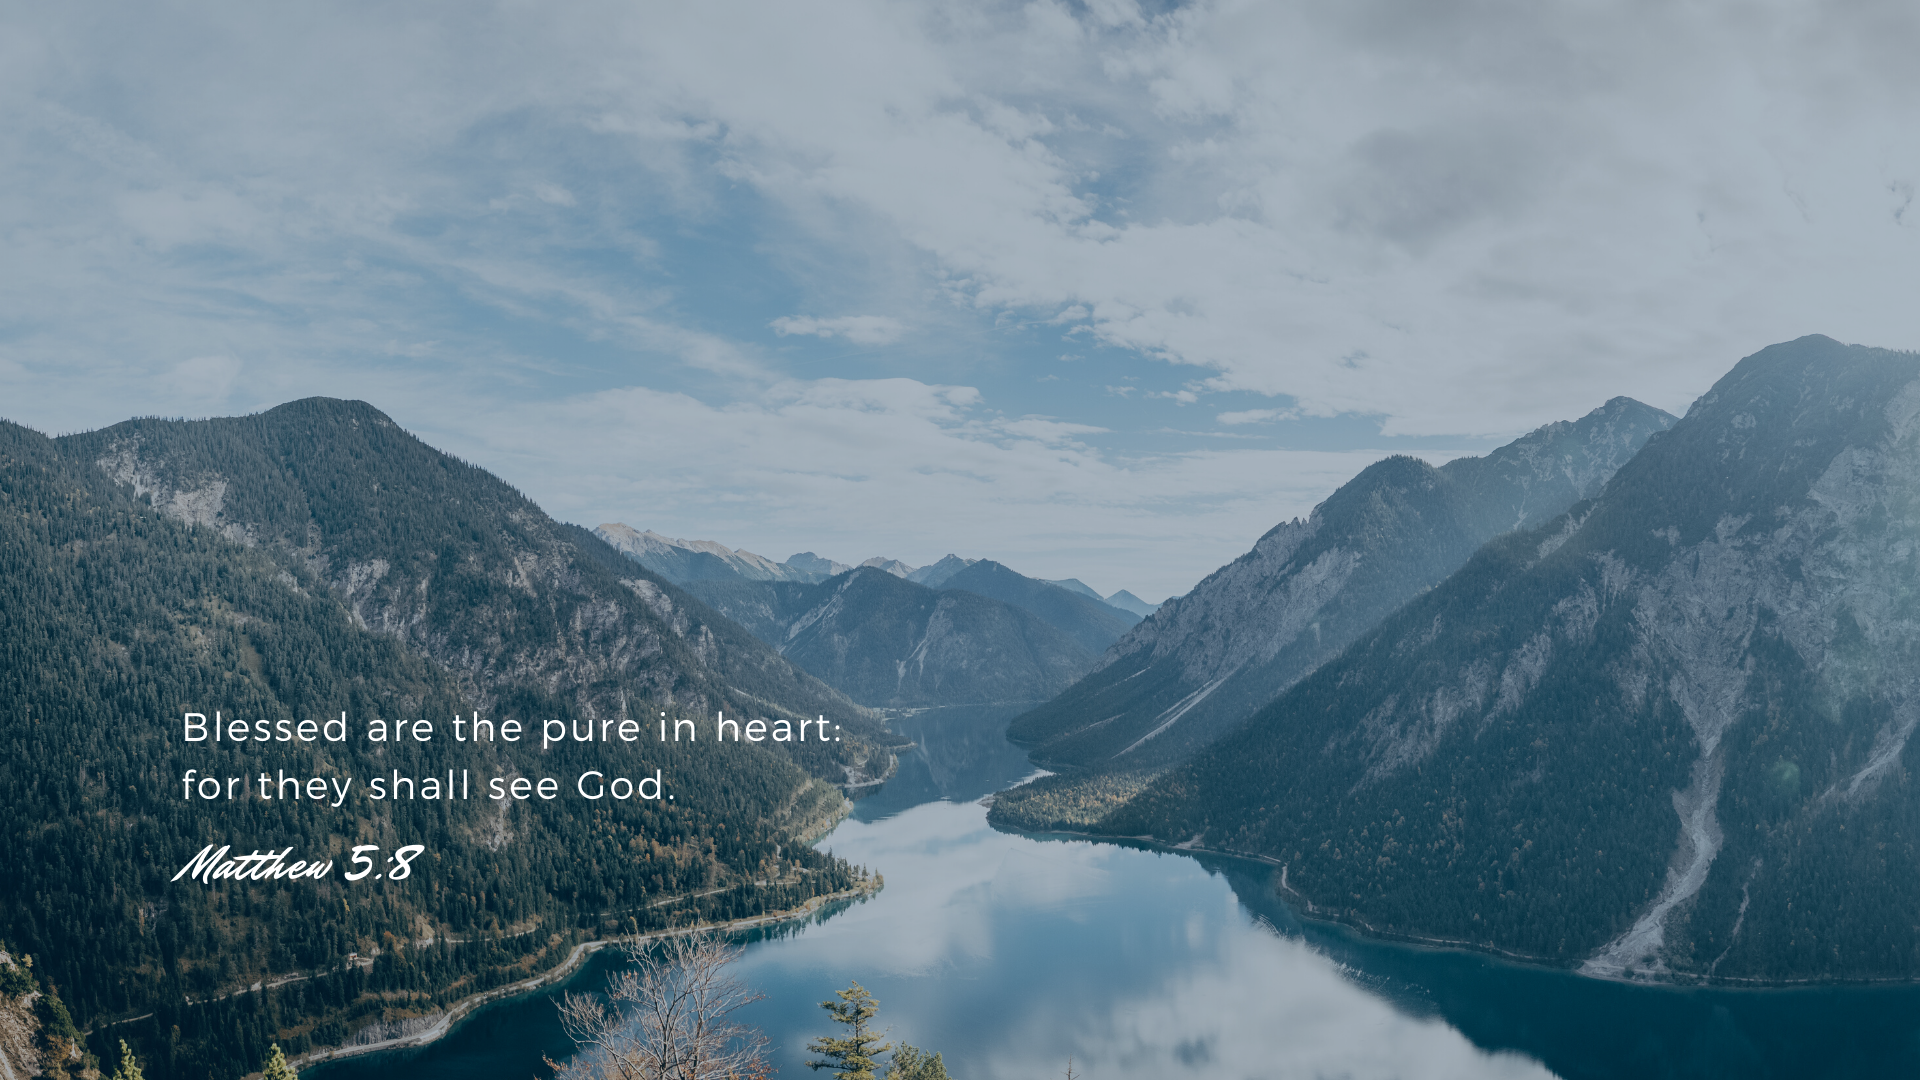 Bible Nature Desktop Backgrounds Powerful And Uplifting From Onlythebible Com